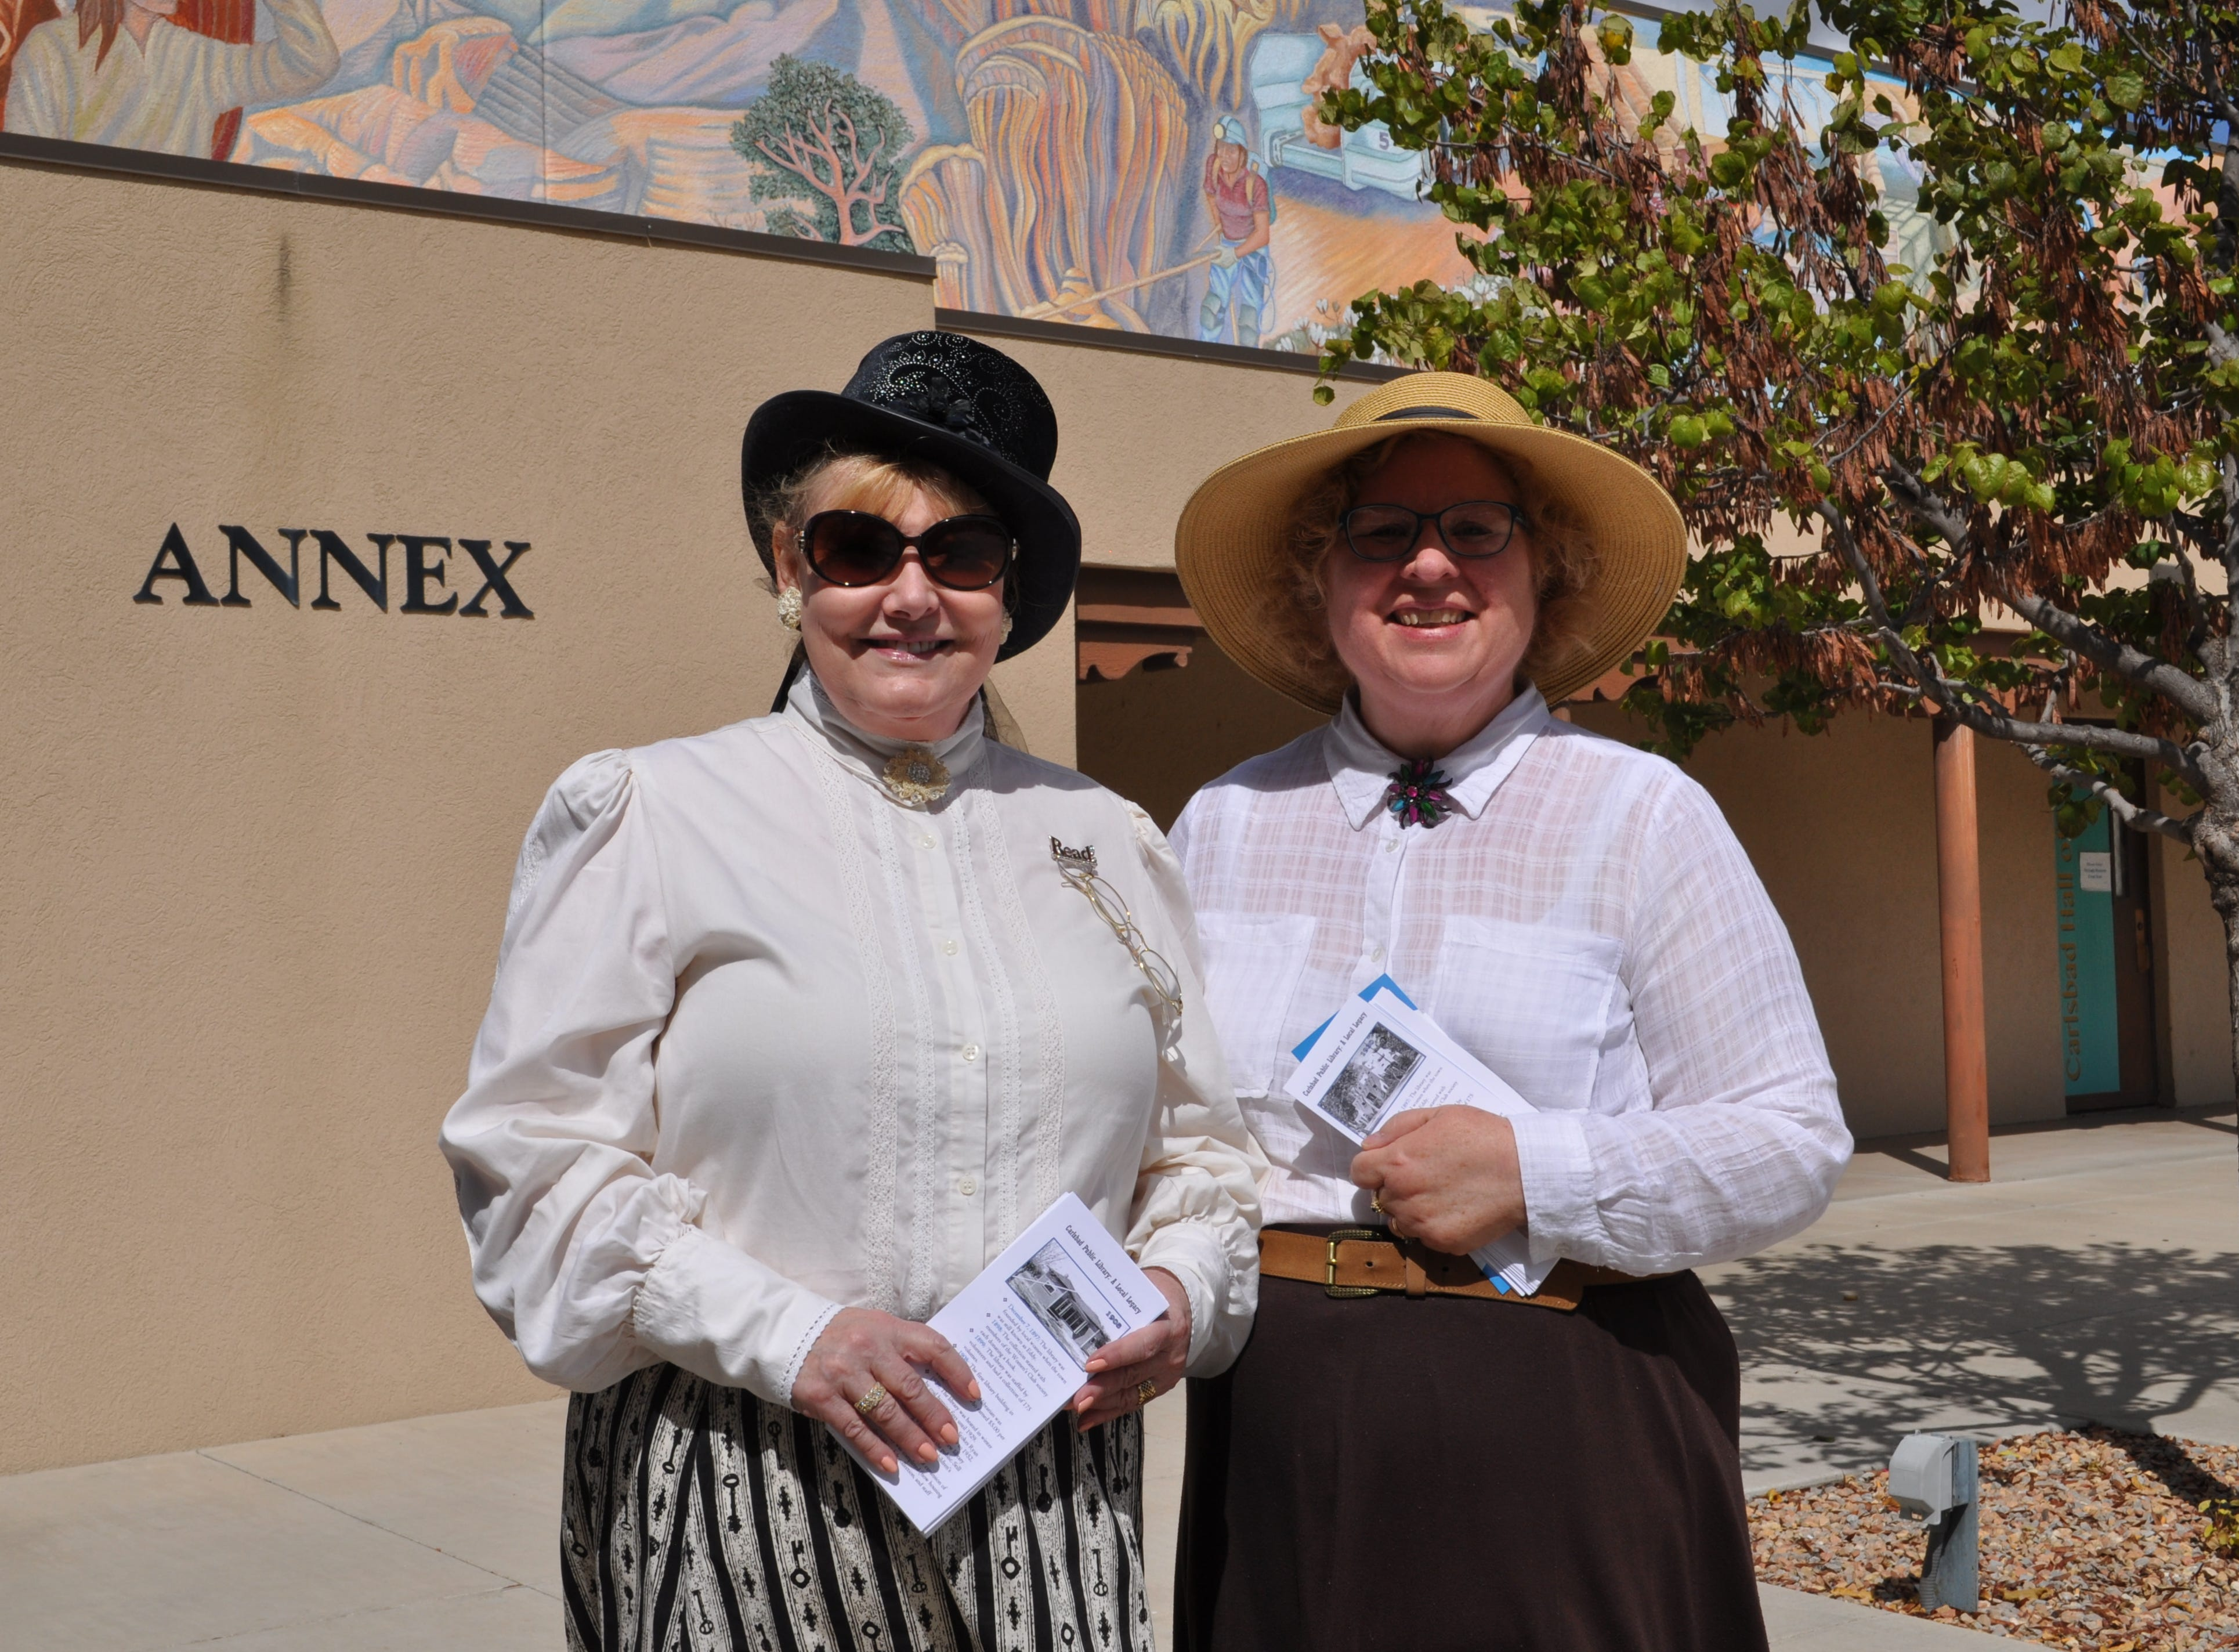 The ladies of the Carlsbad Public Library dressed up for the annual Heritage Fest on Sep. 15.